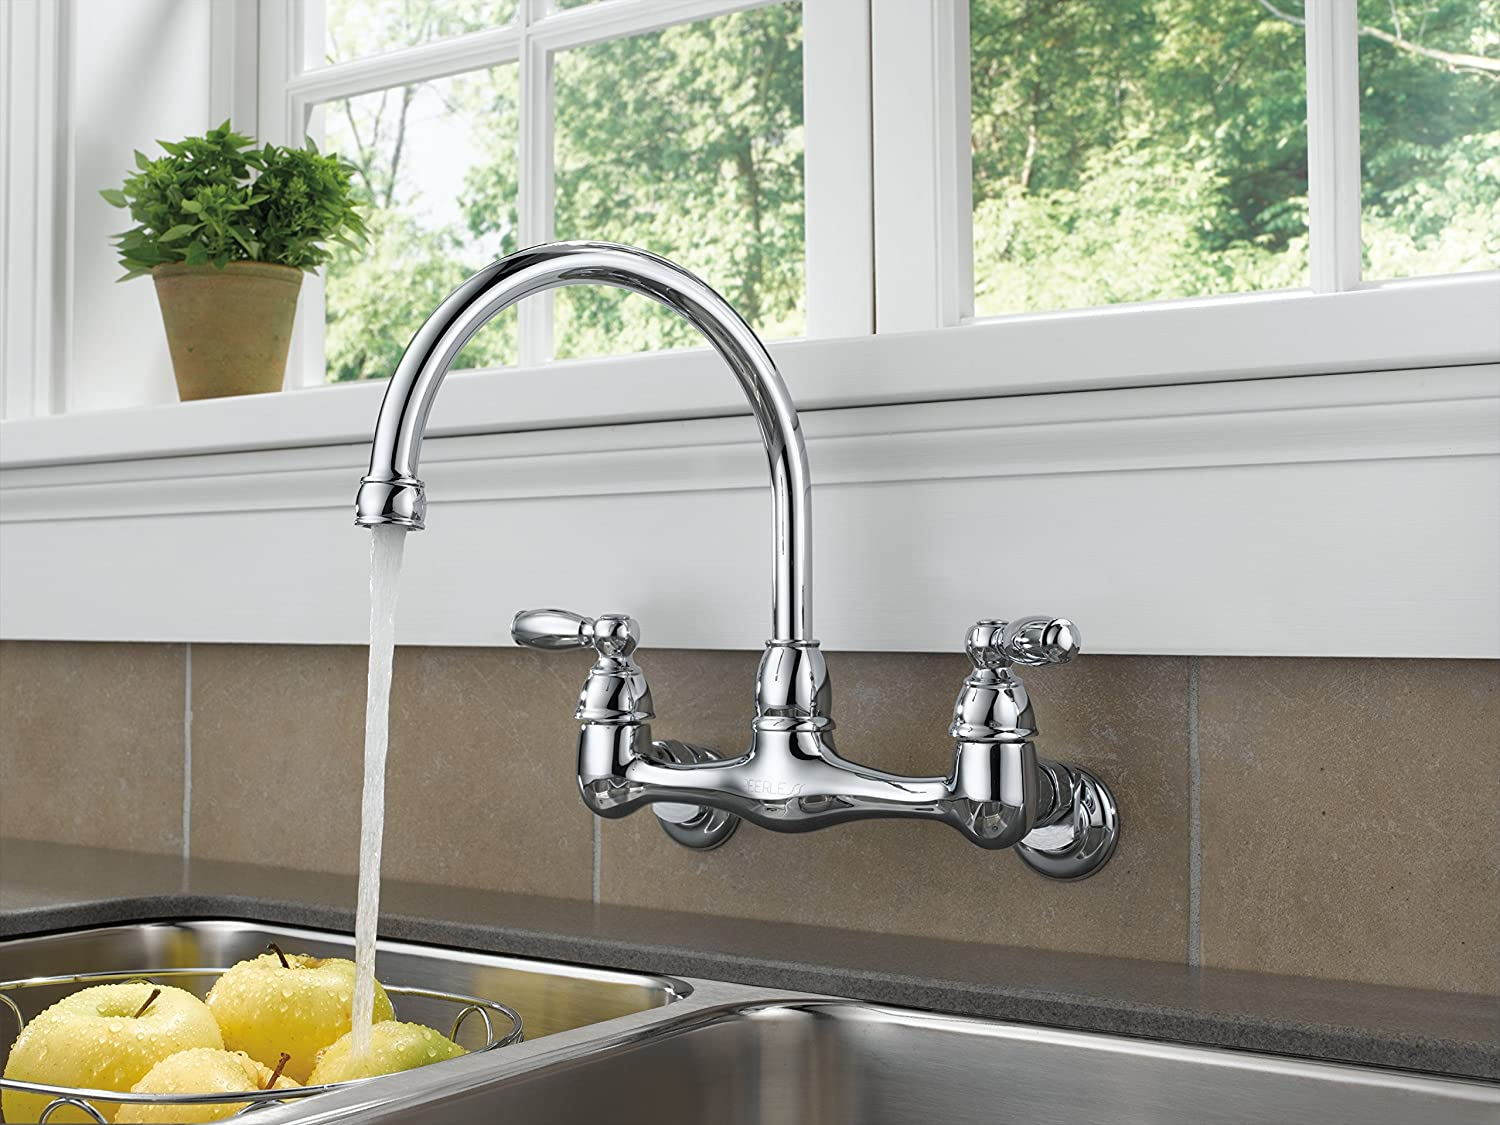 Merveilleux Peerless P299305LF Choice Two Handle Wall Mounted Kitchen Faucet, Chrome    Bar Sink Faucets   Amazon.com